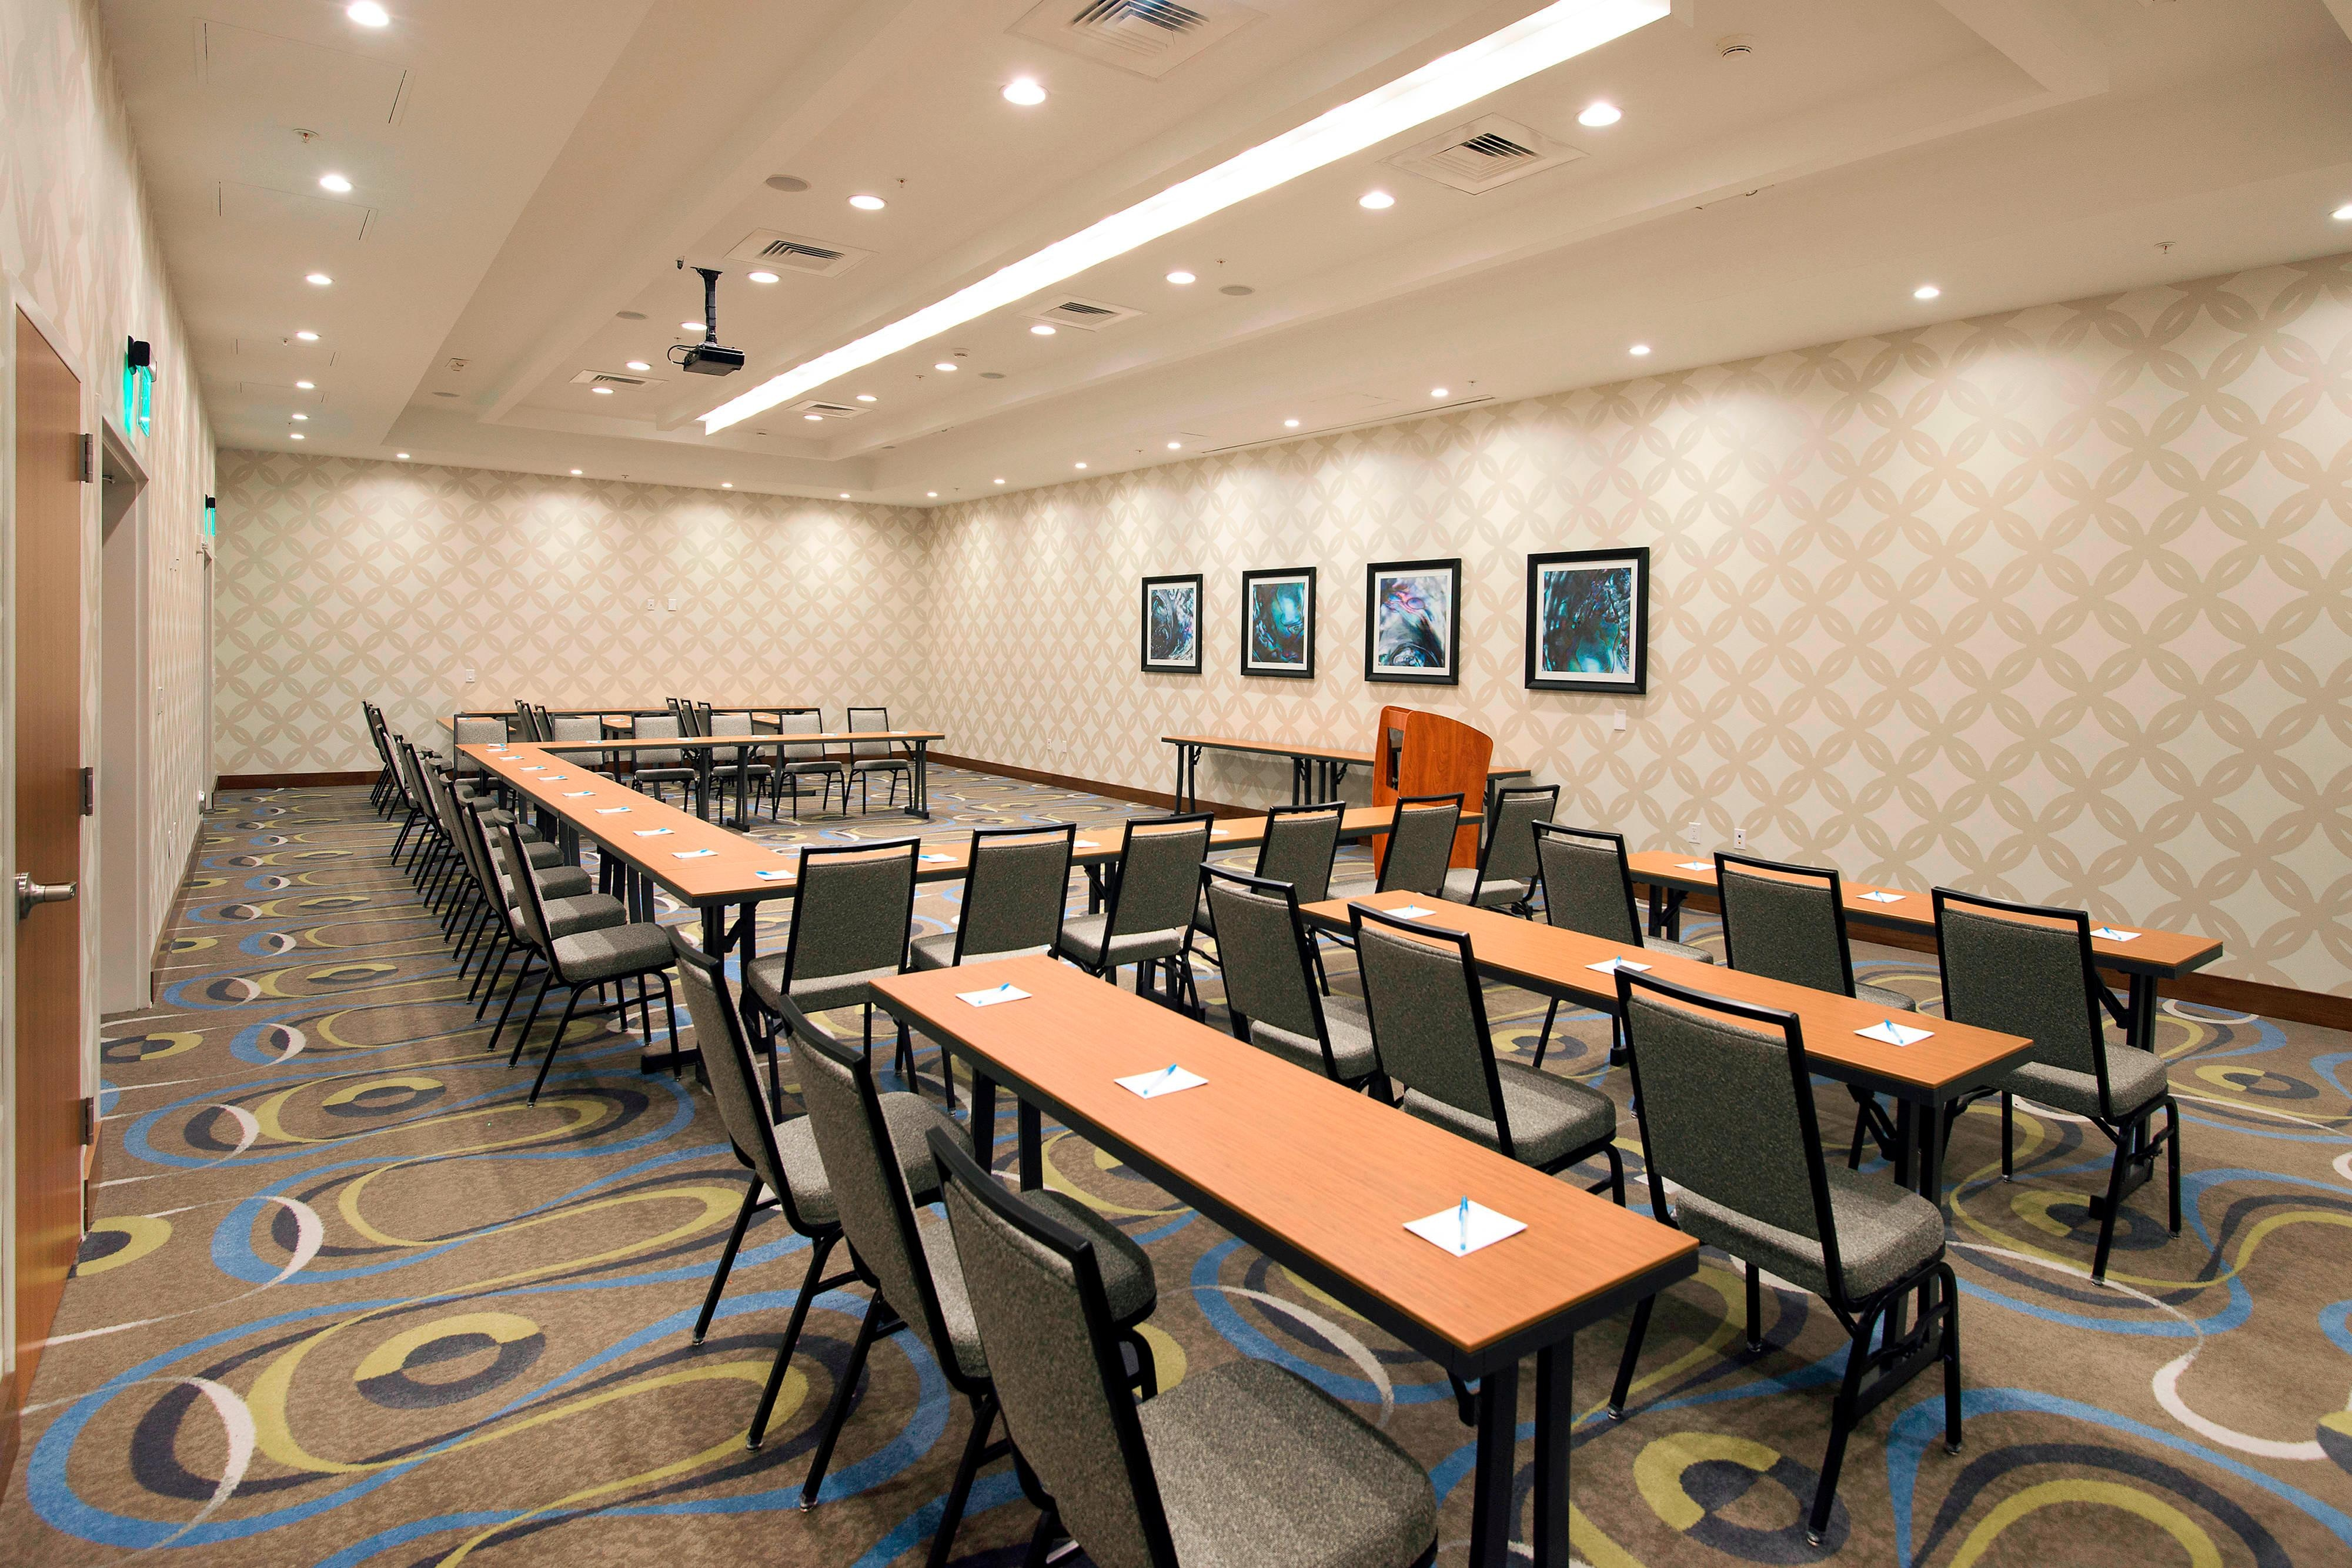 Meeting Room with Classroom Seating